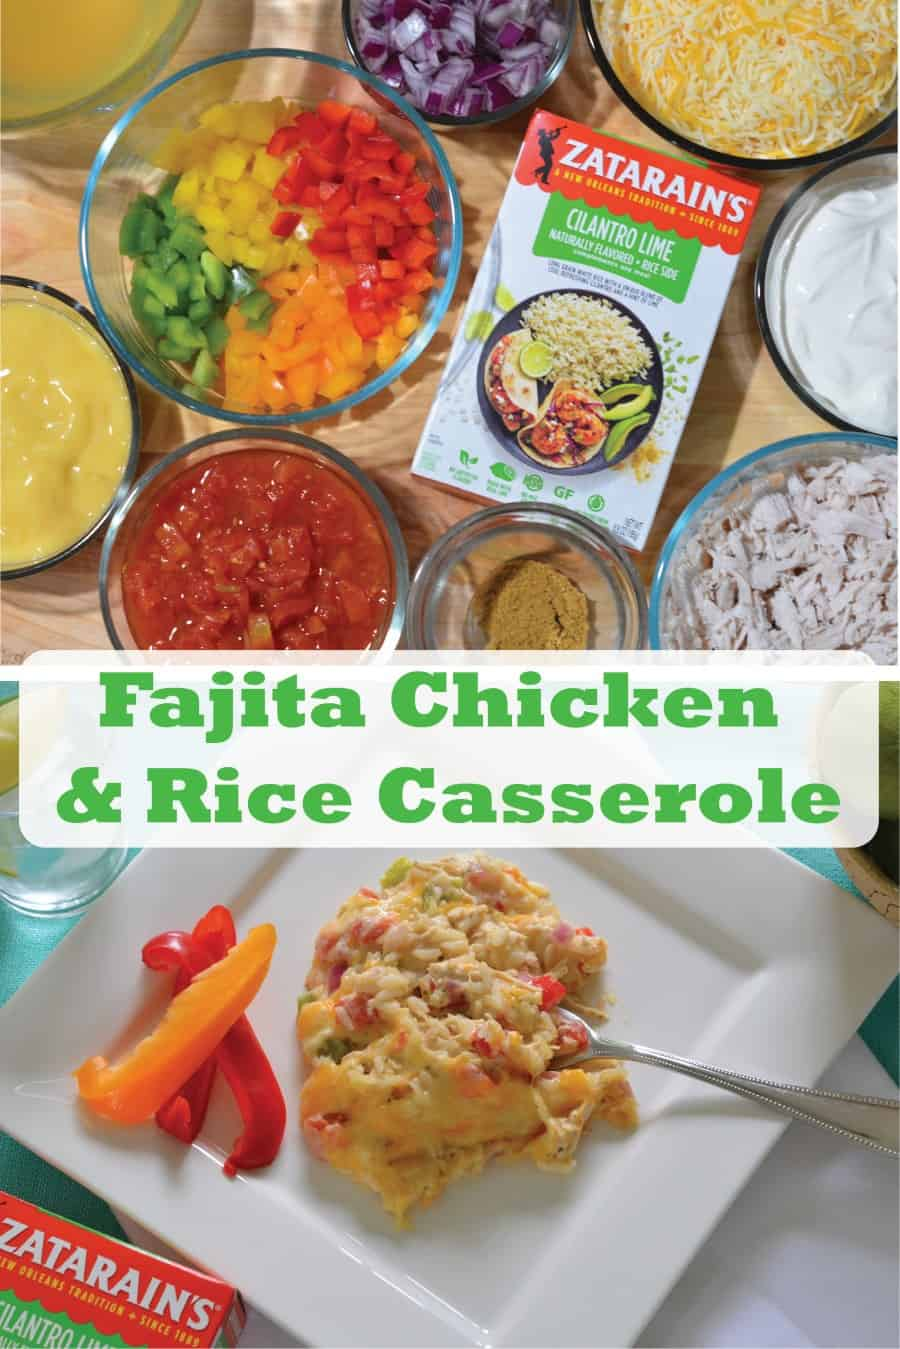 Fajita Chicken and Rice Casserole